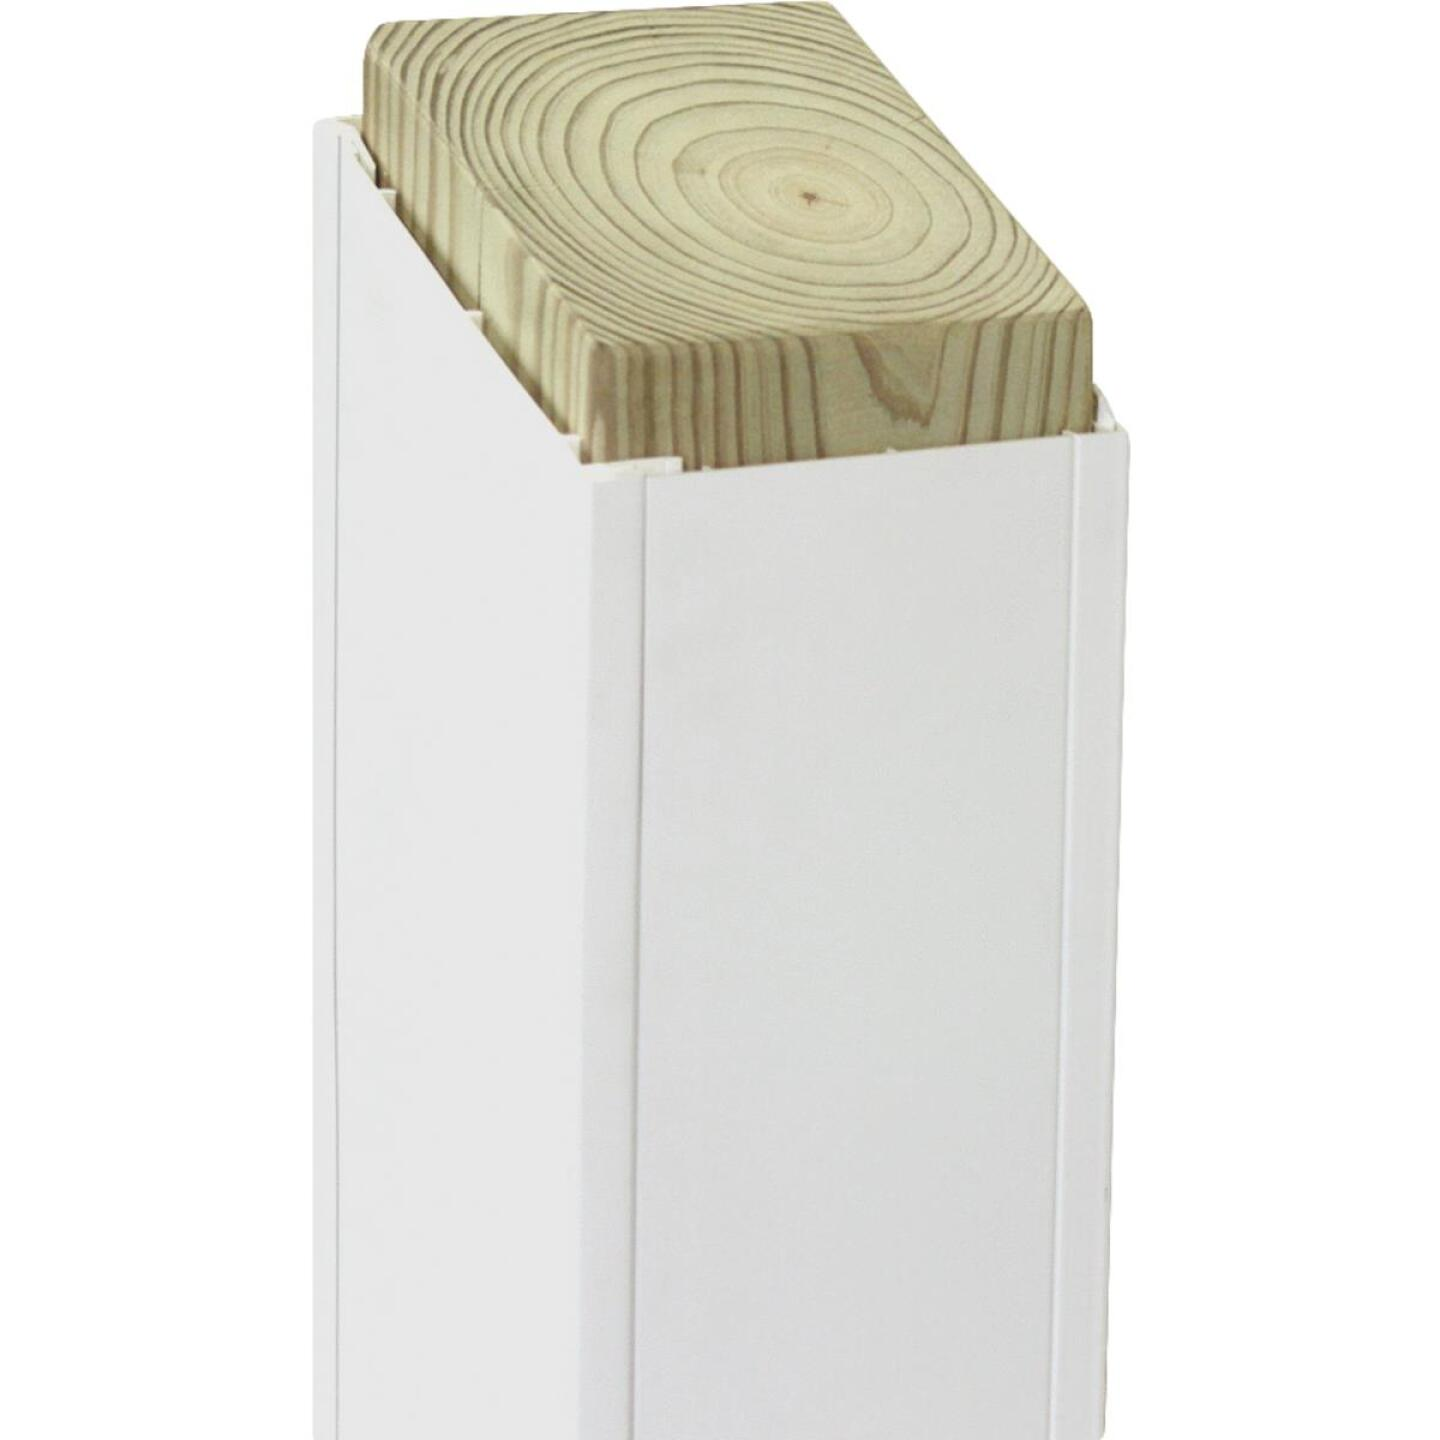 Beechdale 4 In. W. x 4 In. H. x 120 In. L. White PVC Smooth Post Wrap Image 1